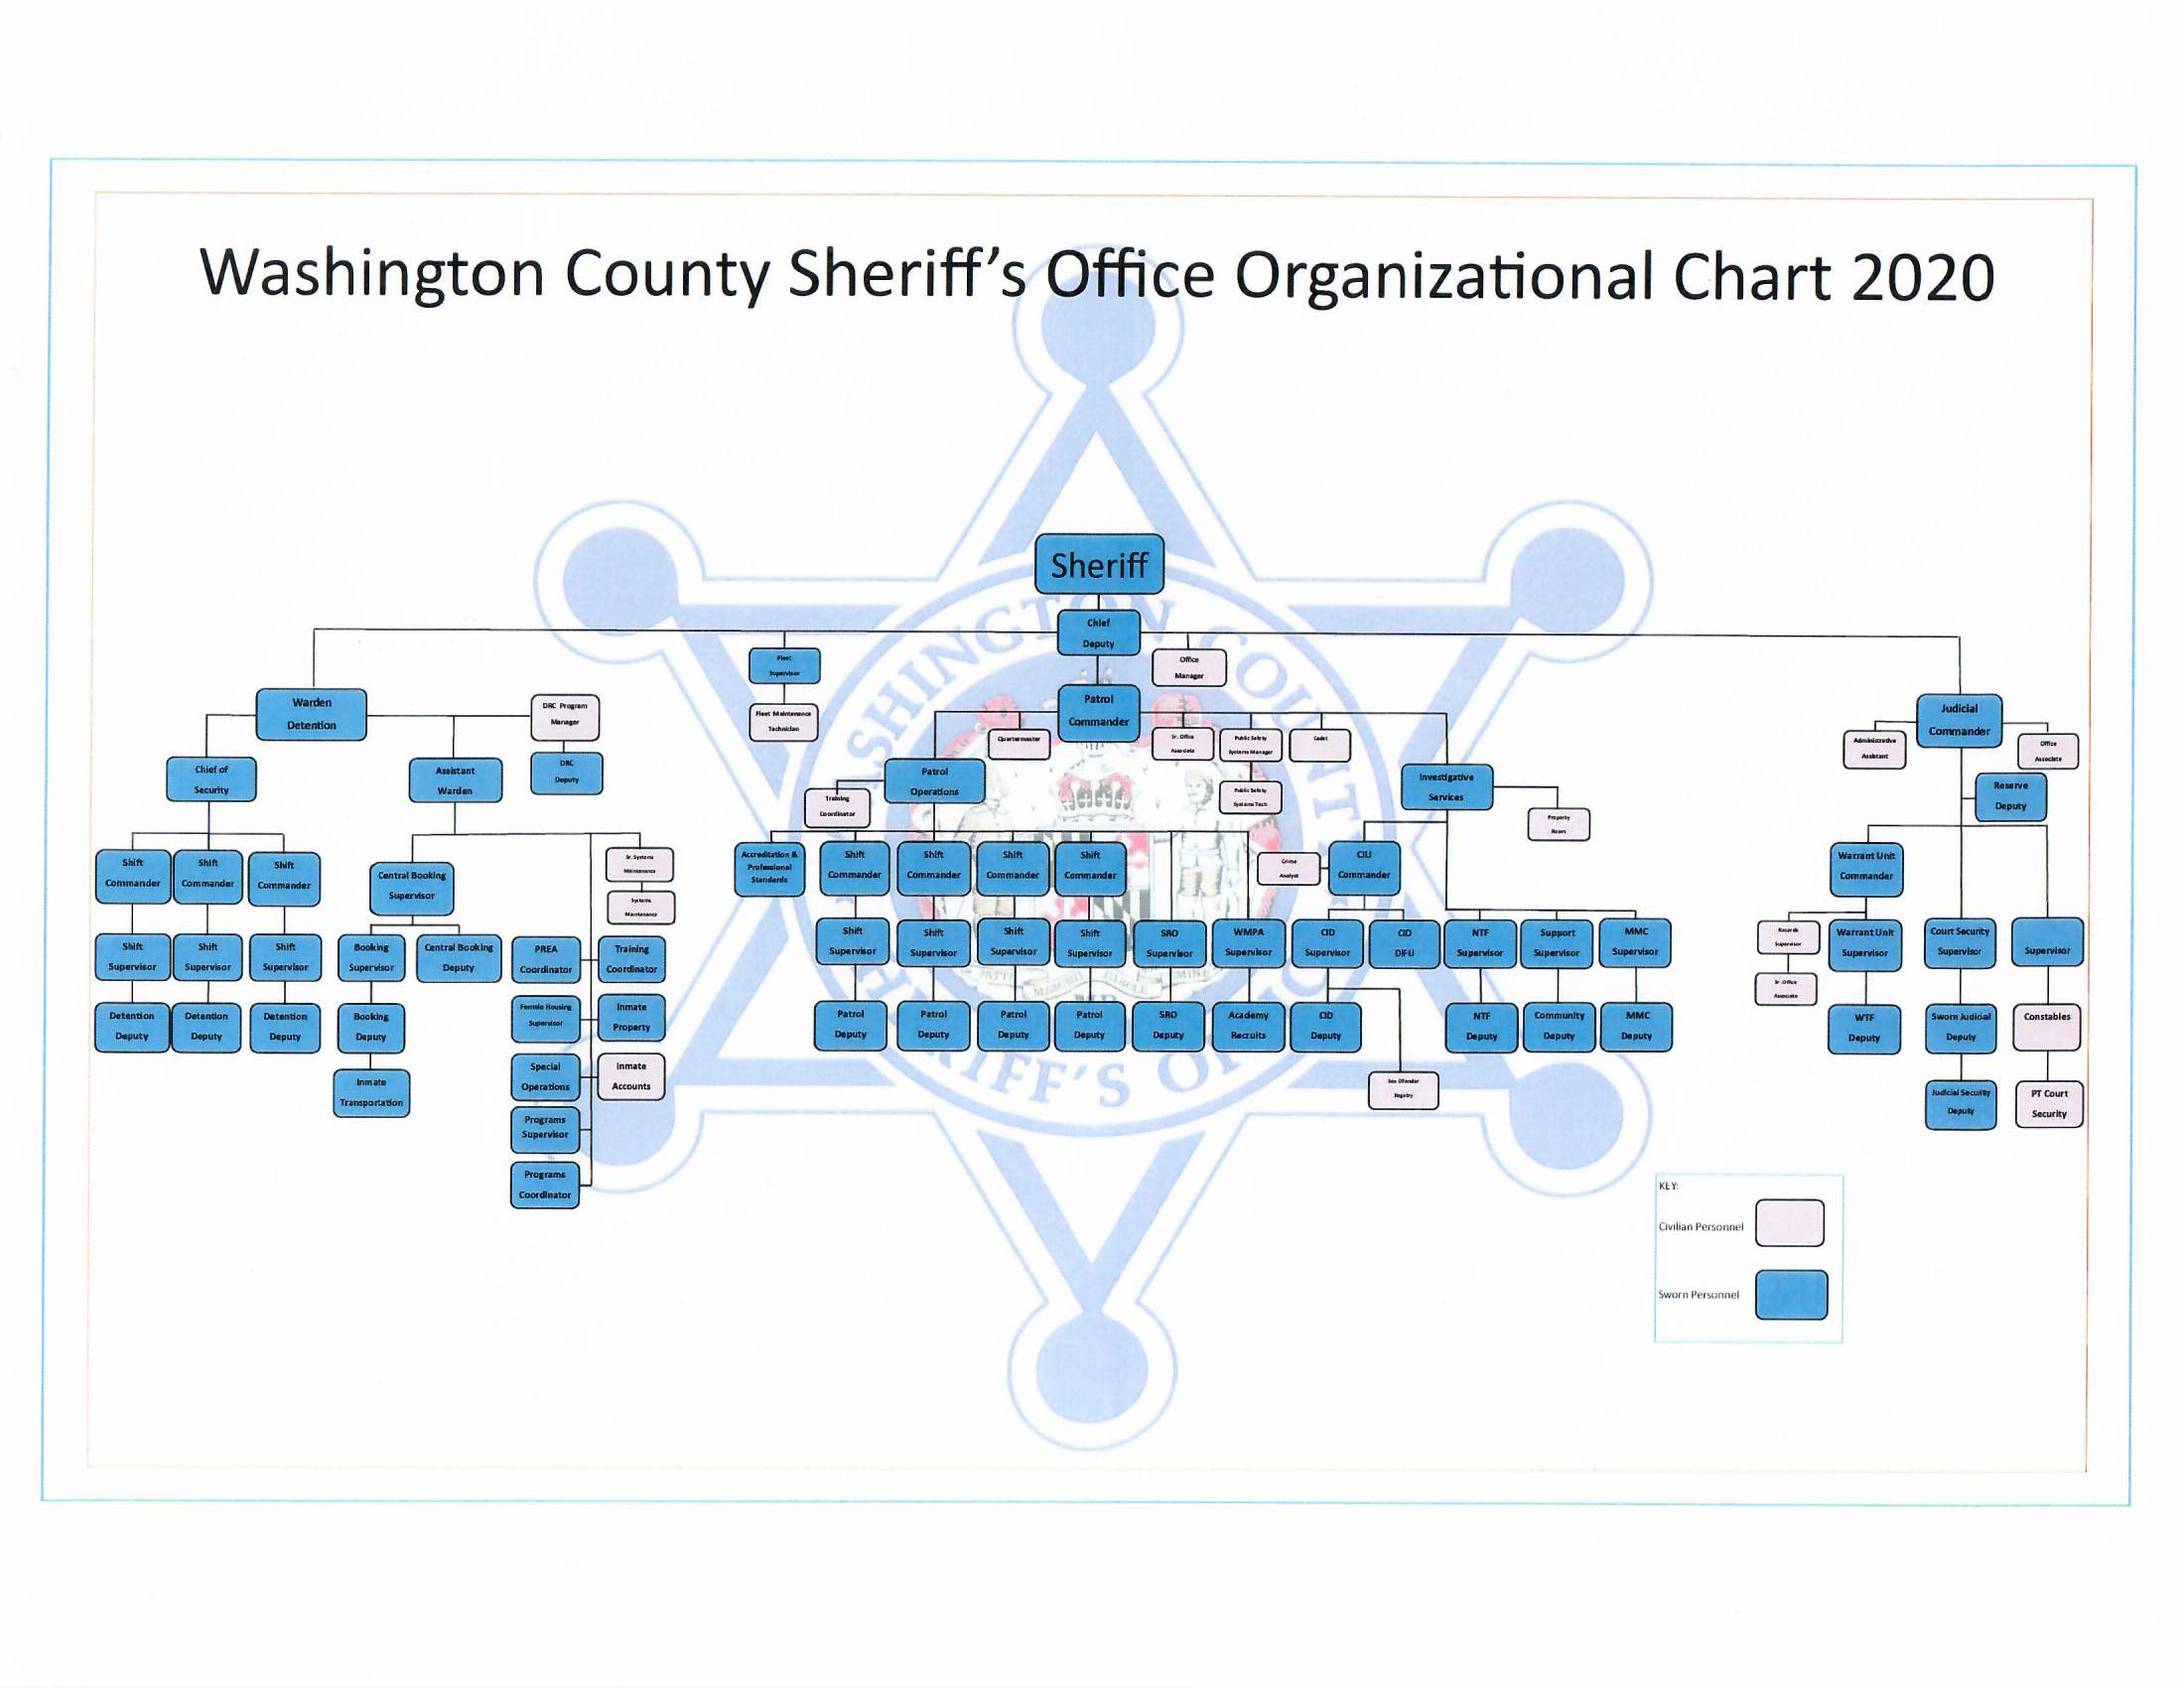 Washington County Sheriff's Office Organizational Chart 2020 Chart